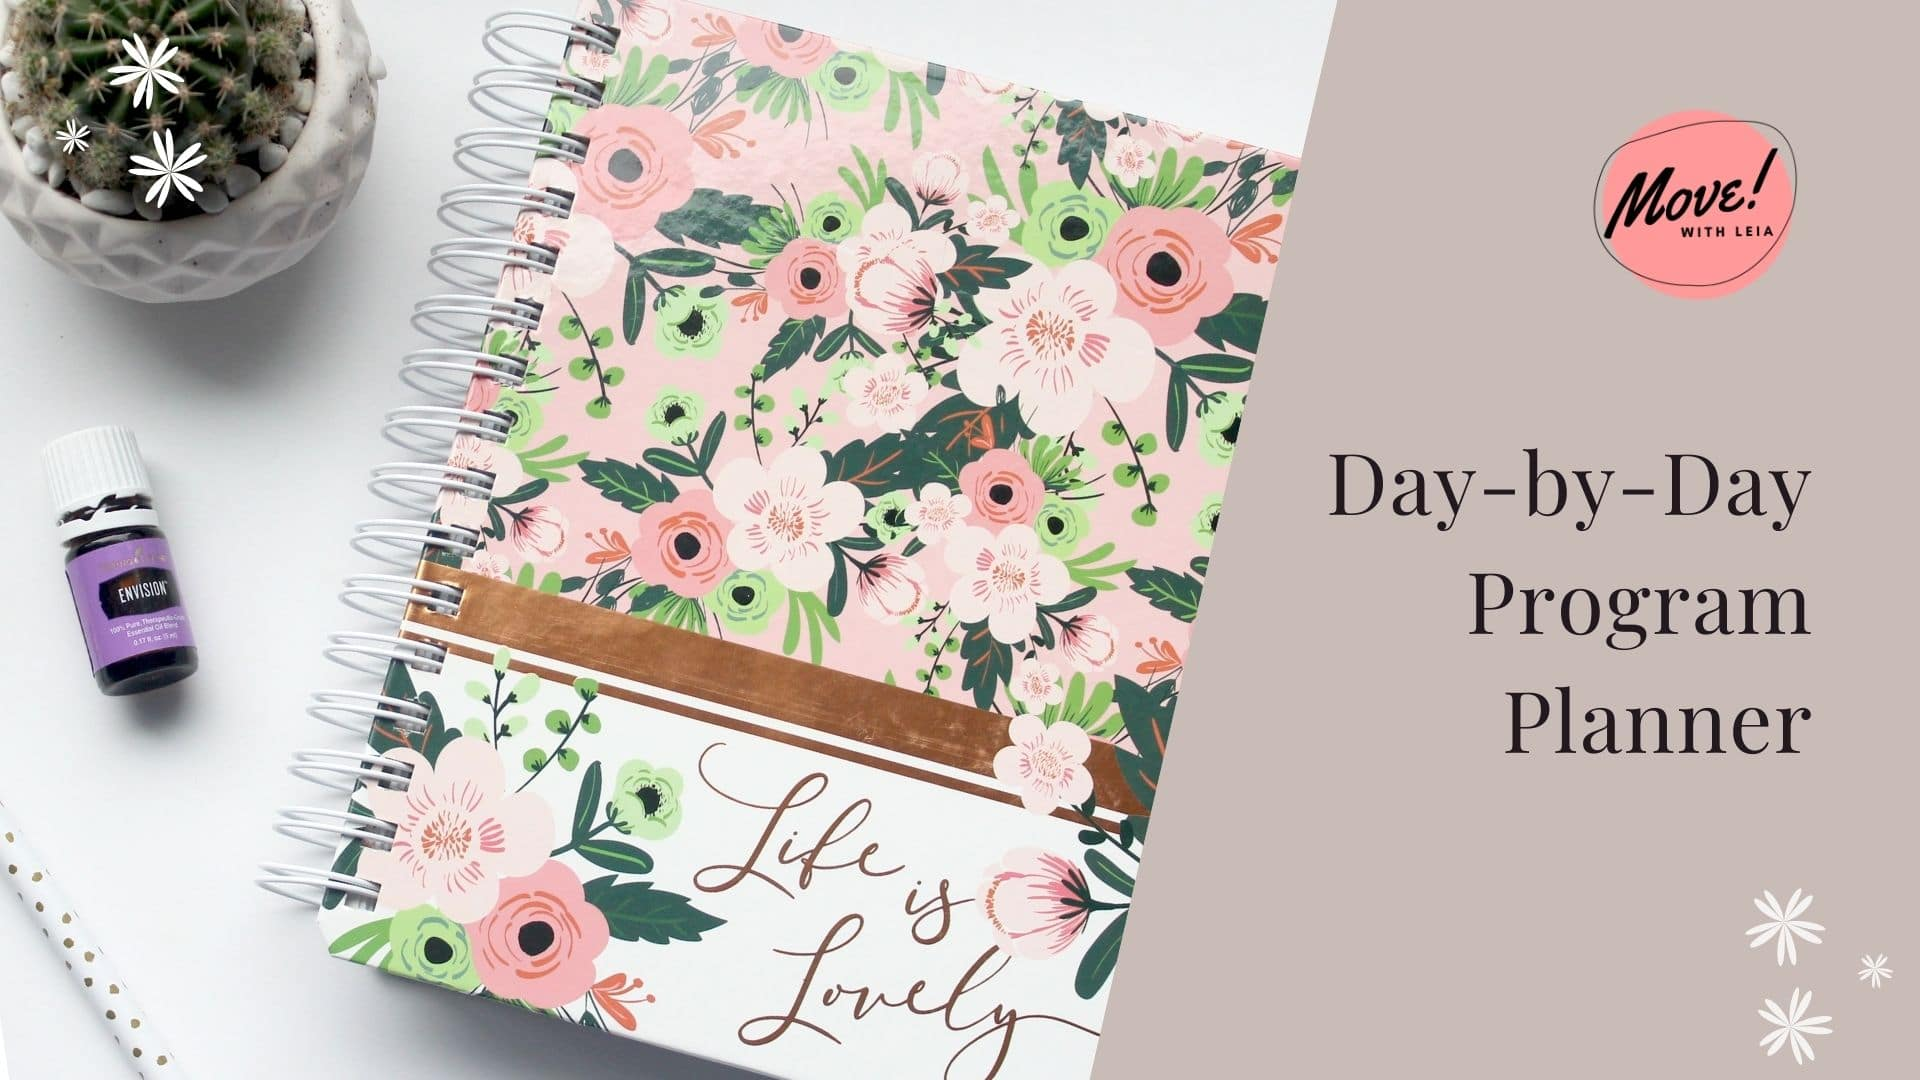 Daily planner, Move with Leia, The Core Vibe